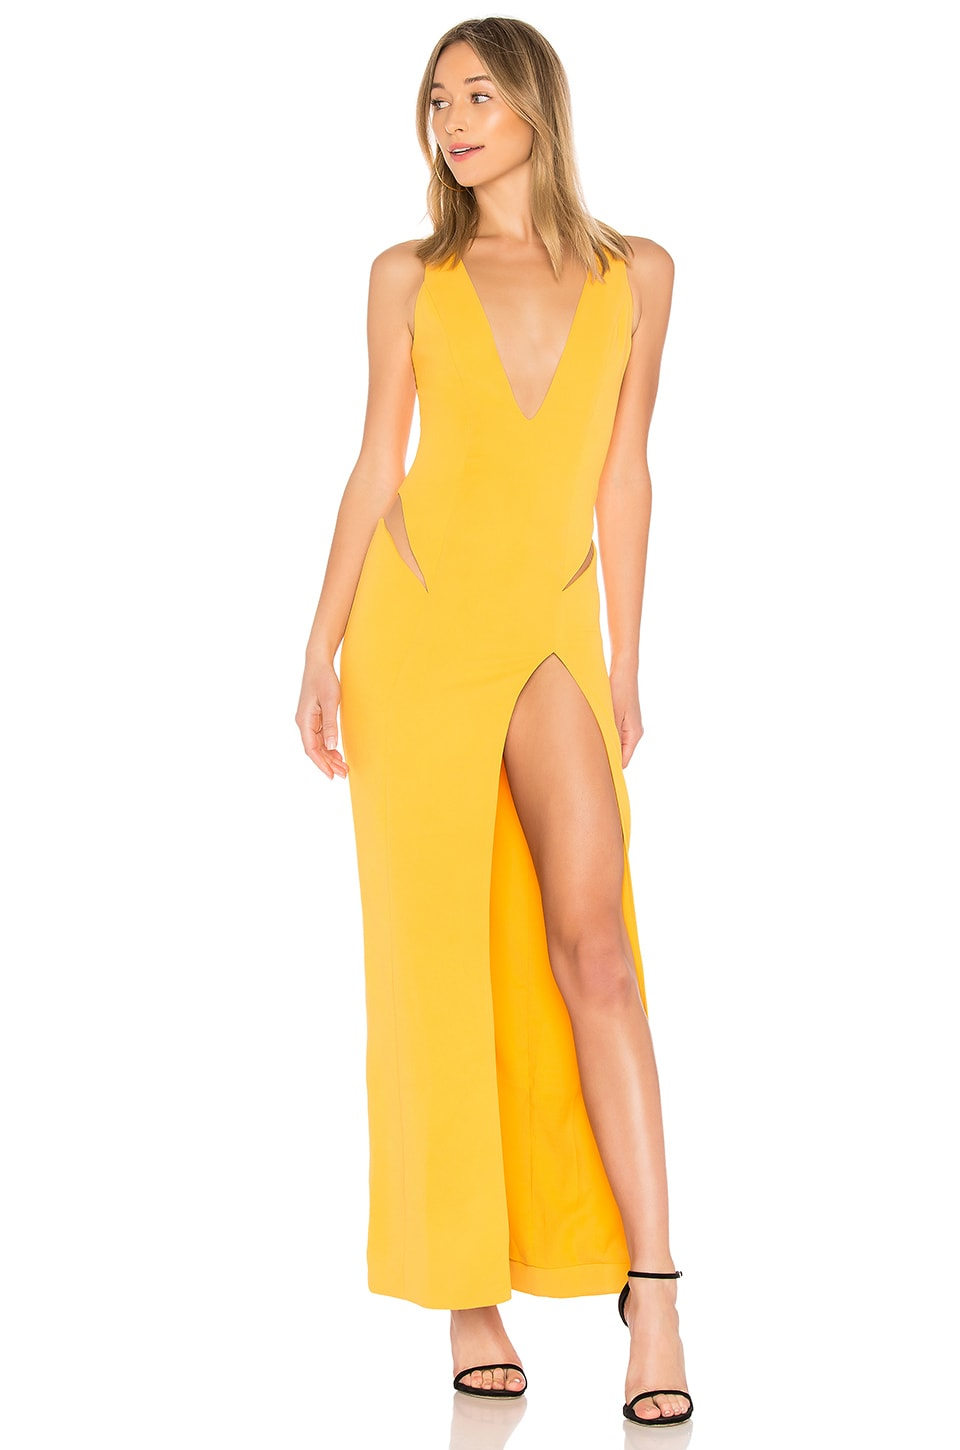 NBD Tweet Gown in Canary